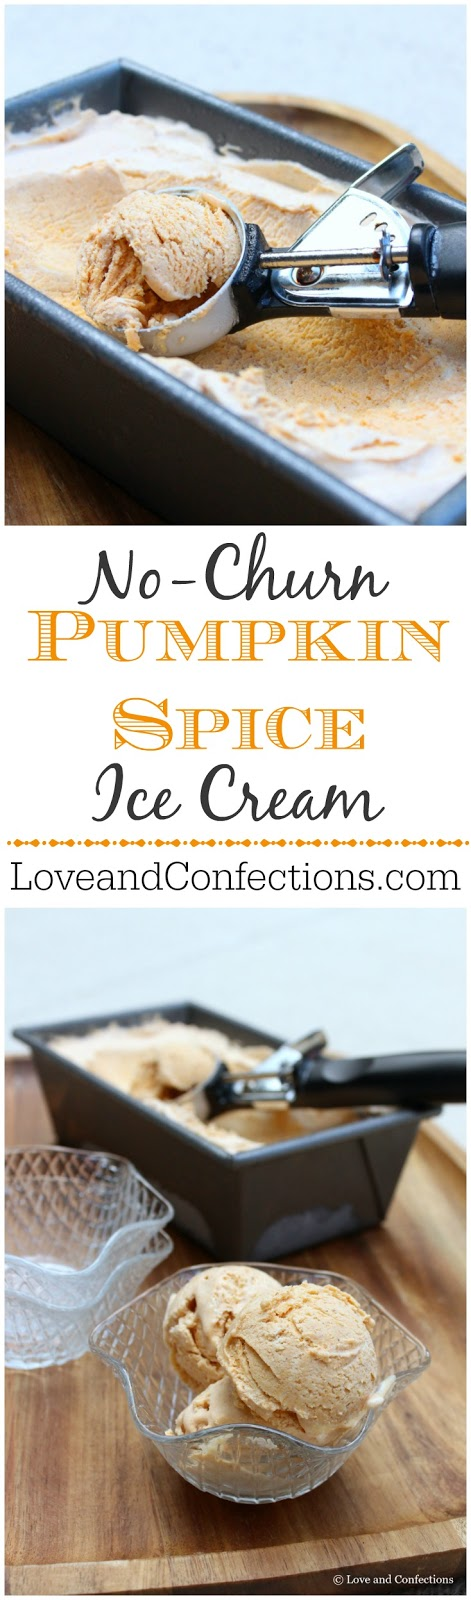 No-Churn Pumpkin Spice Ice Cream from LoveandConfections.com #PumpkinWeek